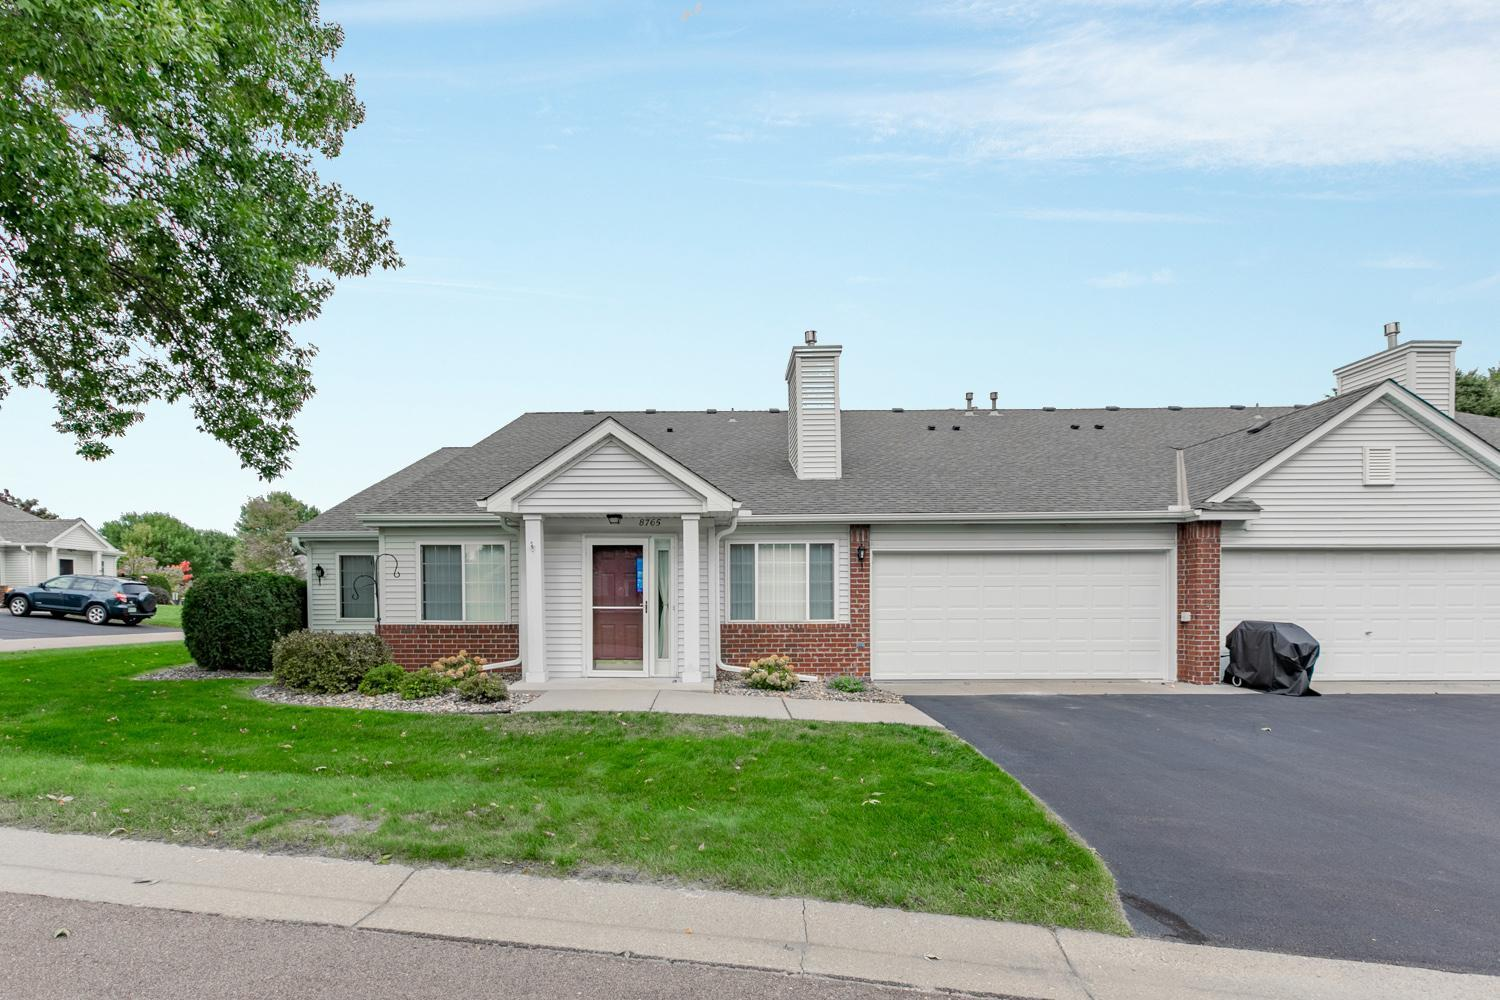 8765 Baxter Way #54 Property Photo - Inver Grove Heights, MN real estate listing